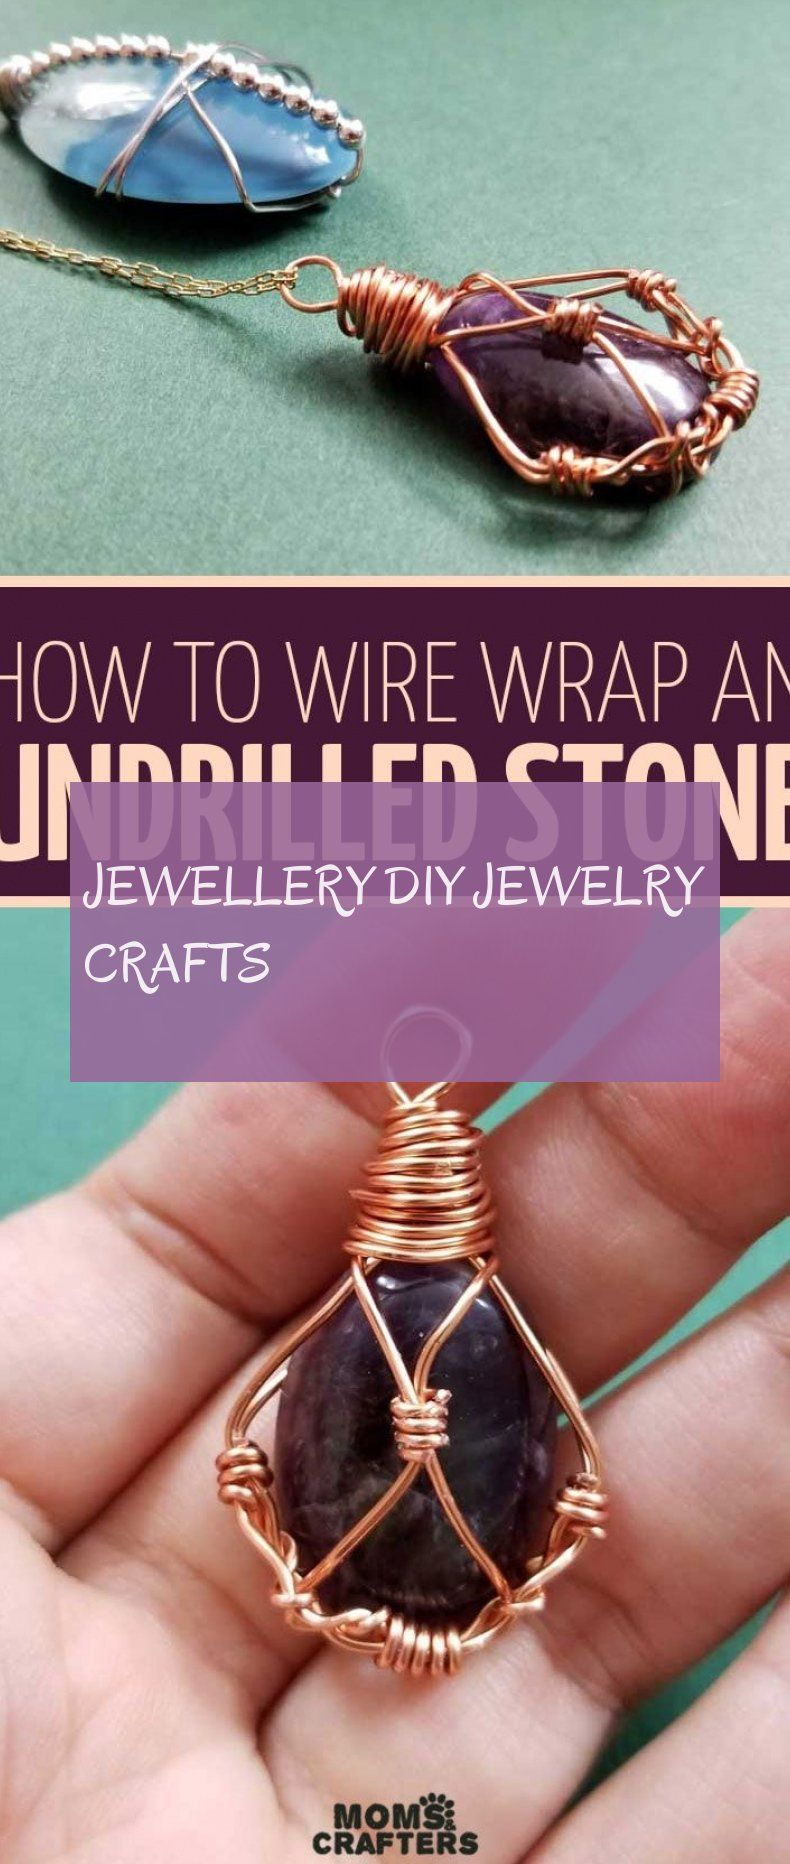 Jewellery diy jewelry crafts